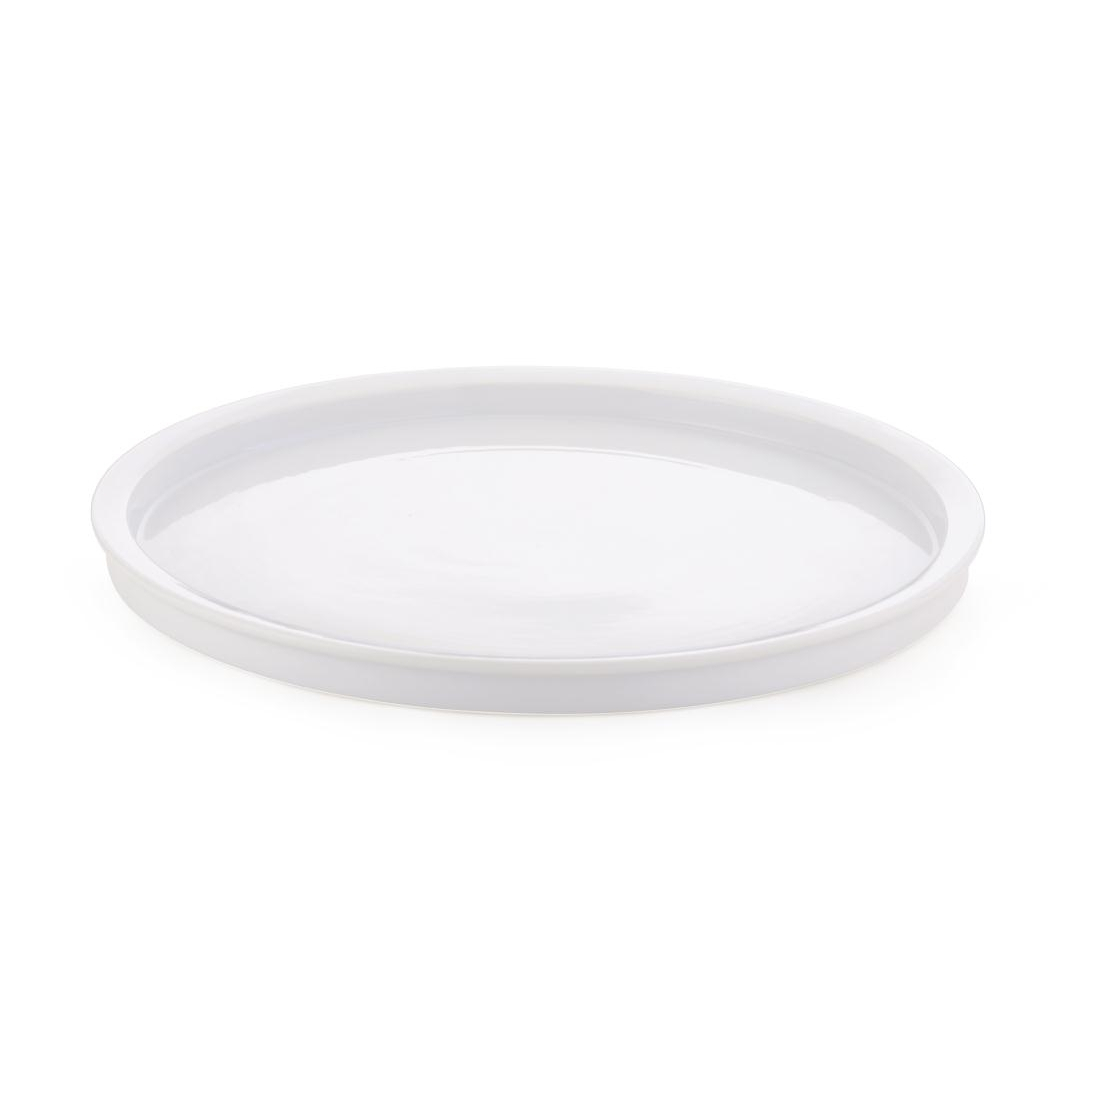 Porcelain Cake Stand Plate 285mm